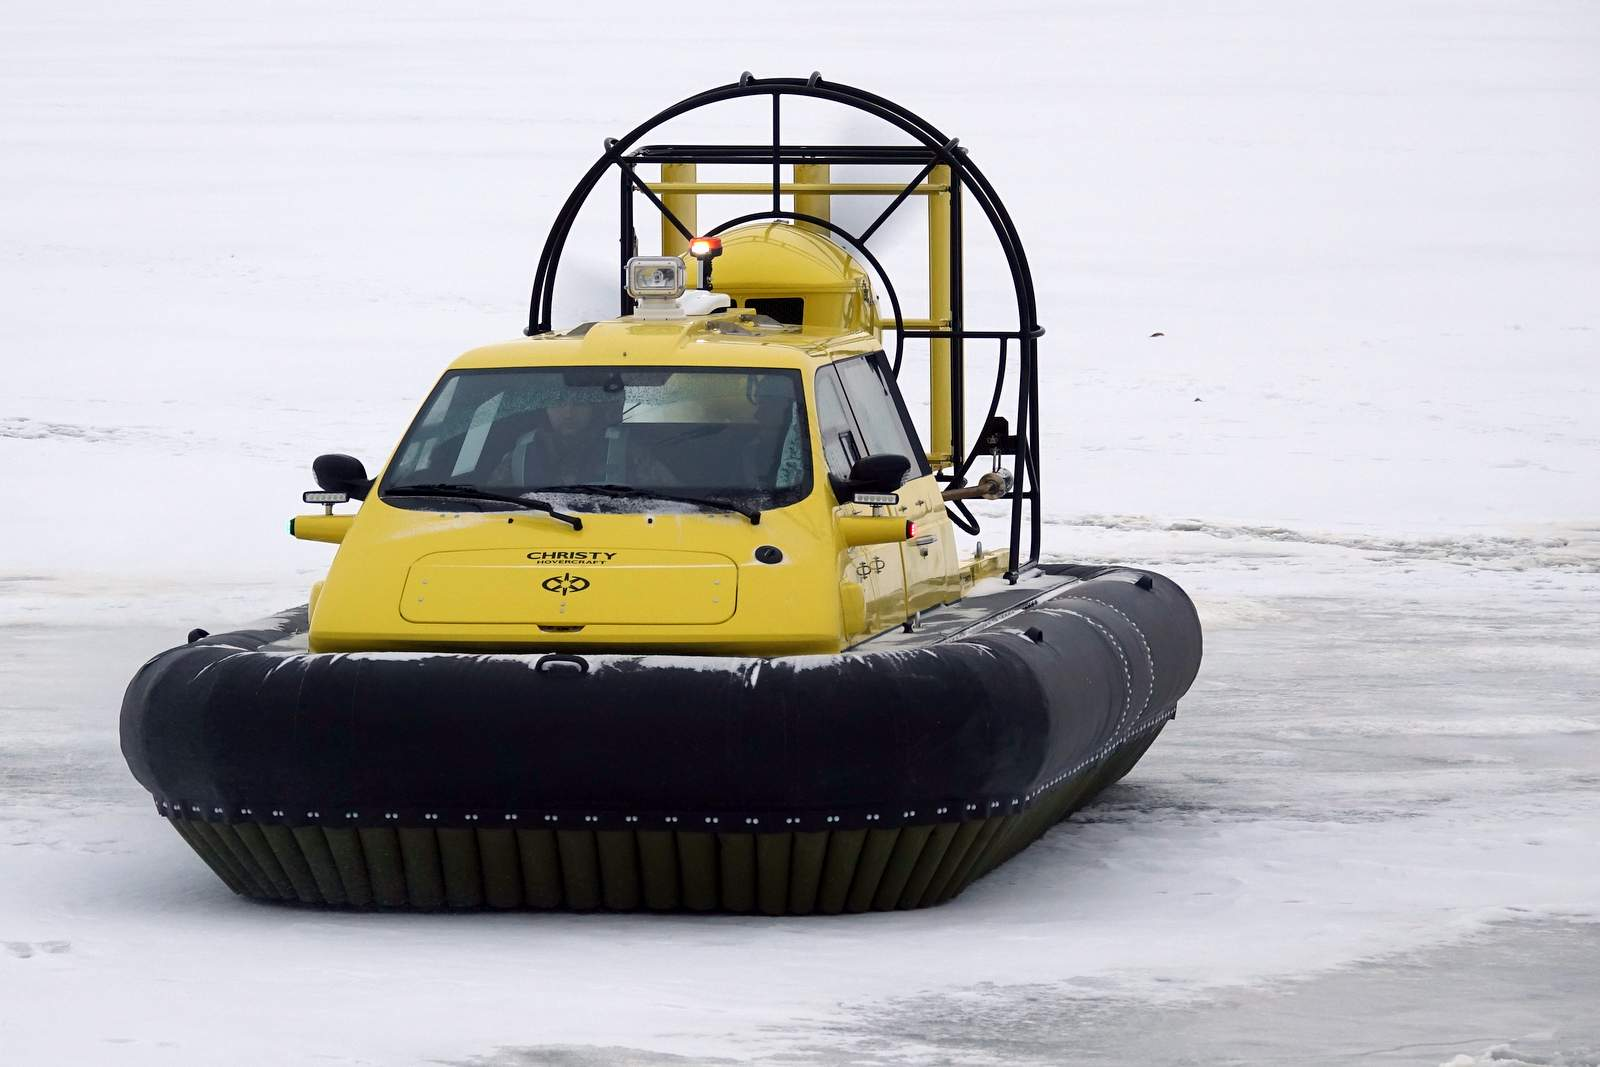 Hovercraft Christy 5146 FC DeLuxe (11).JPG | фото №10